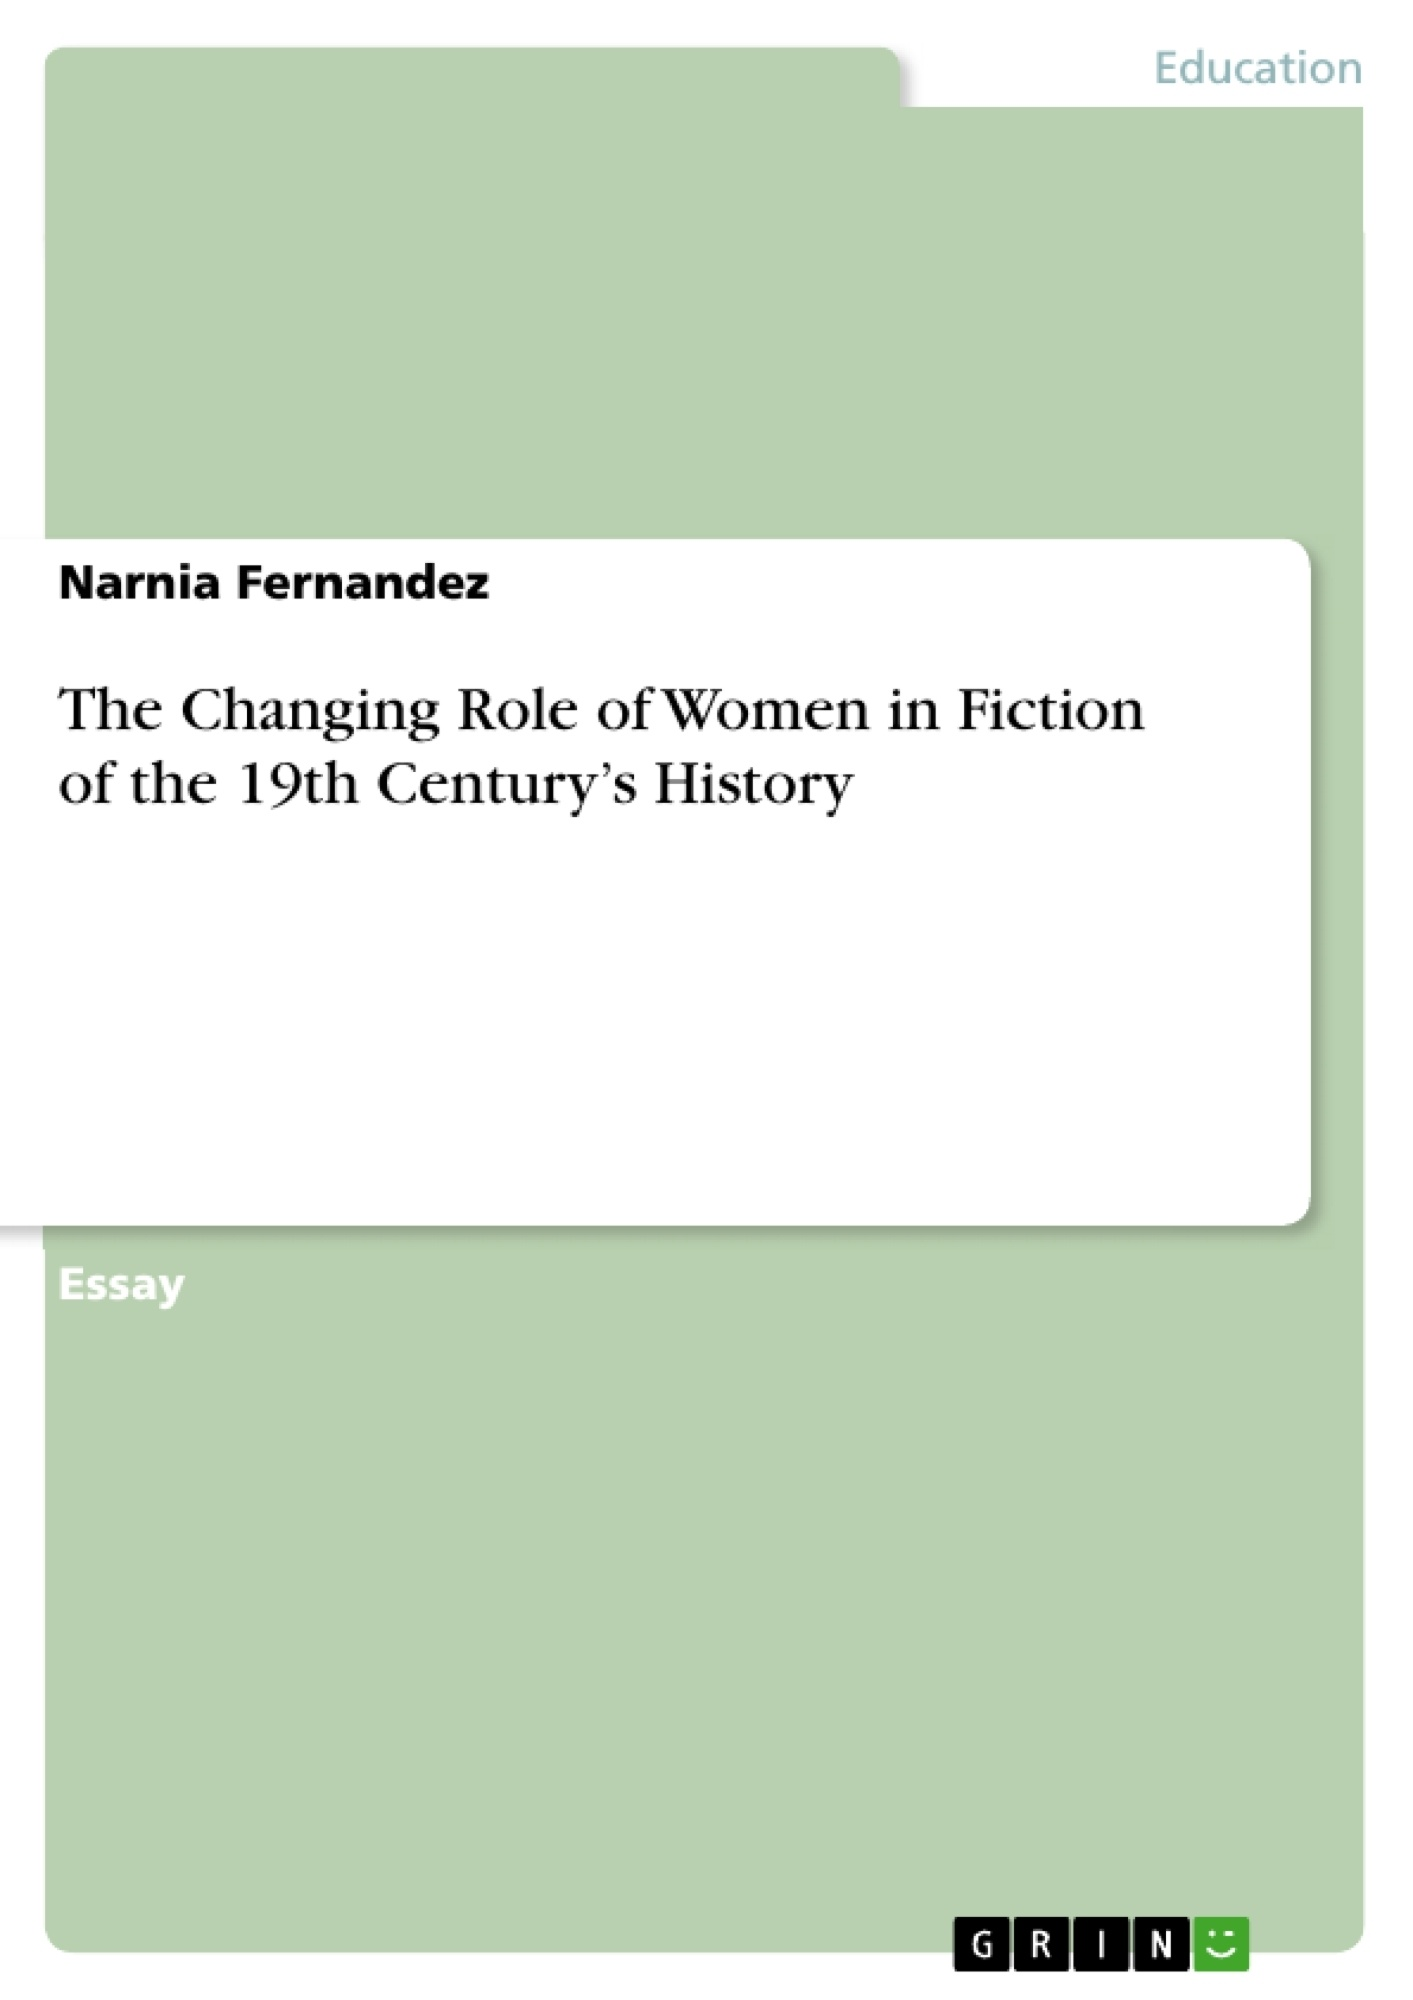 women in 19th century boston essay In nineteenth century because of the consequences of the revolution  make  the writing process easier with essaysharkcom how did the american  revolution influence women's rights american women of the 18th century had  far fewer rights than they have now  boston, houghton mifflin, 1994.